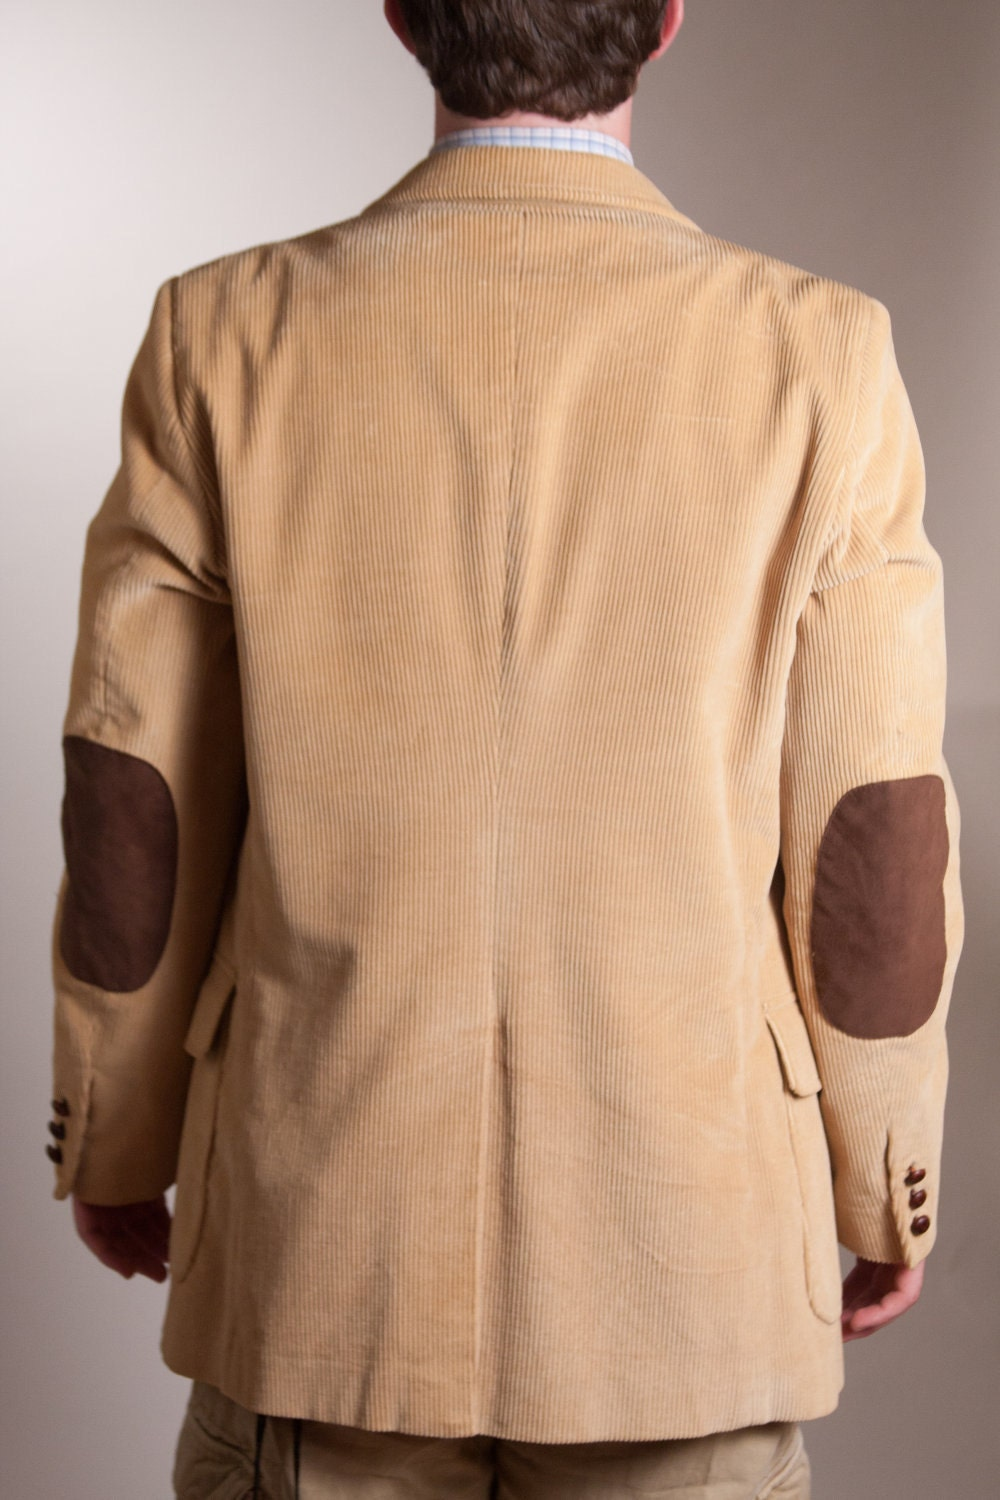 Men S Tan Curdoroy Jacket With Leather Elbow Pads